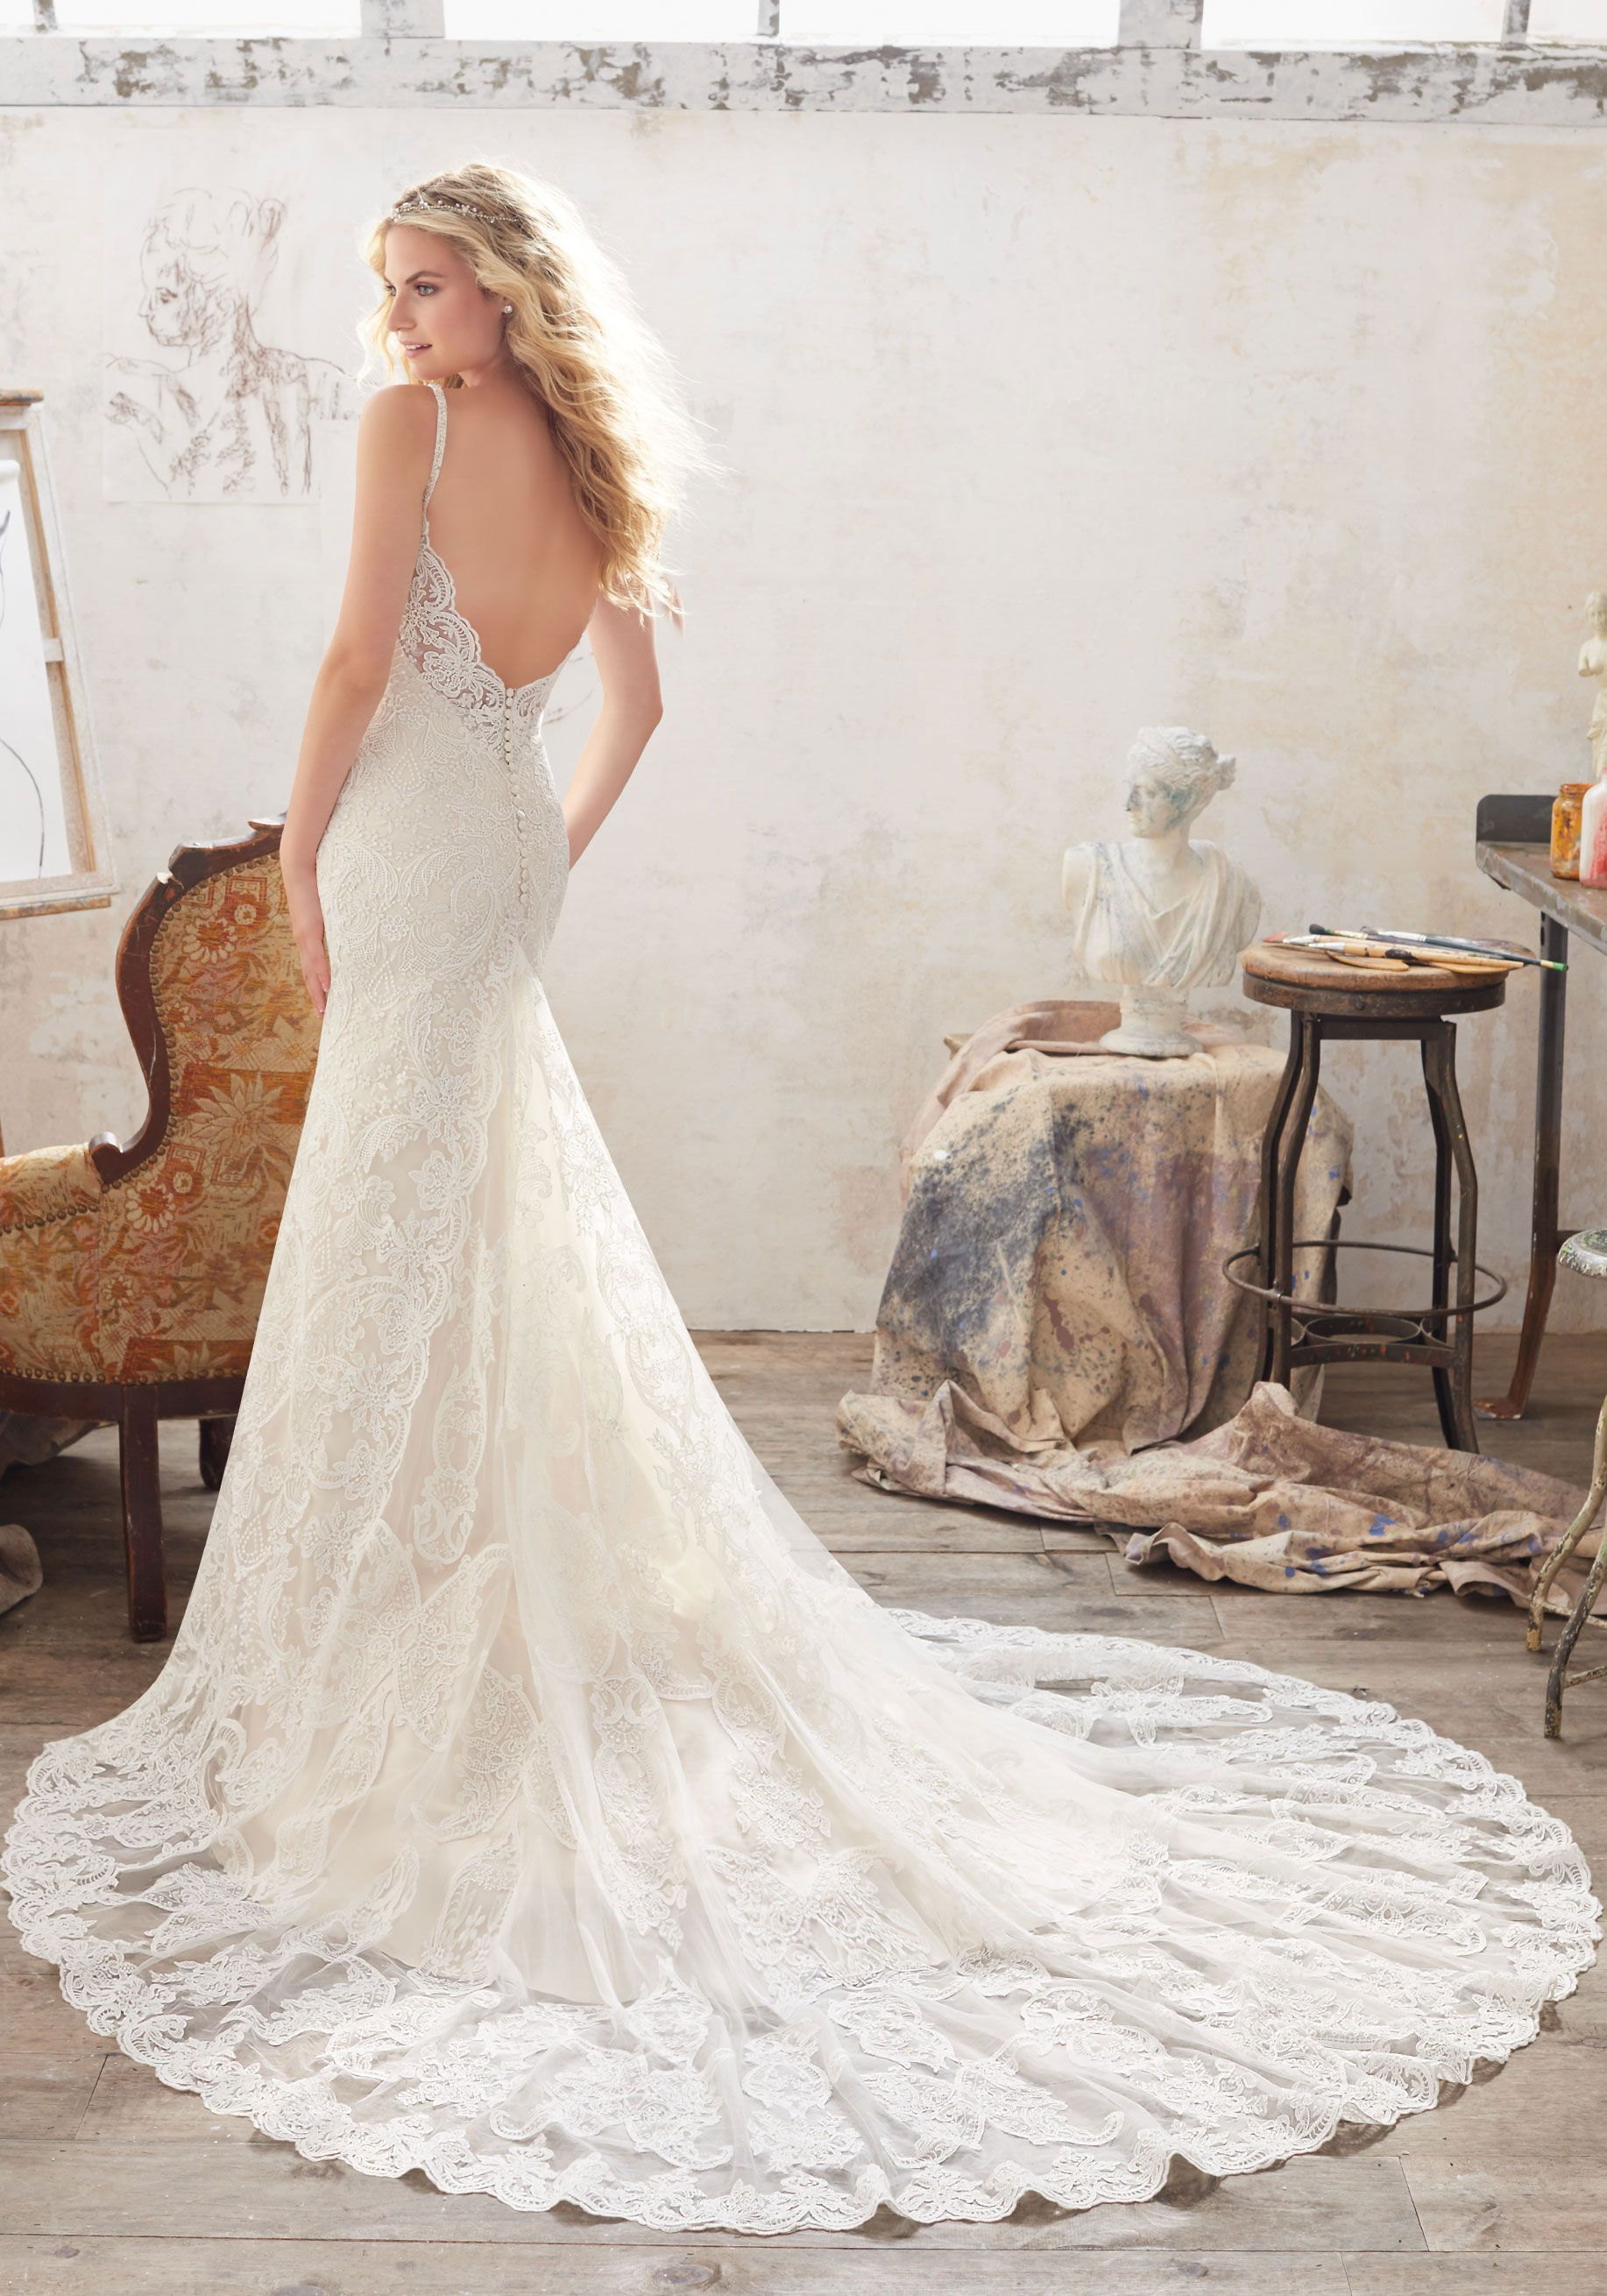 Cost of a mori lee wedding dress